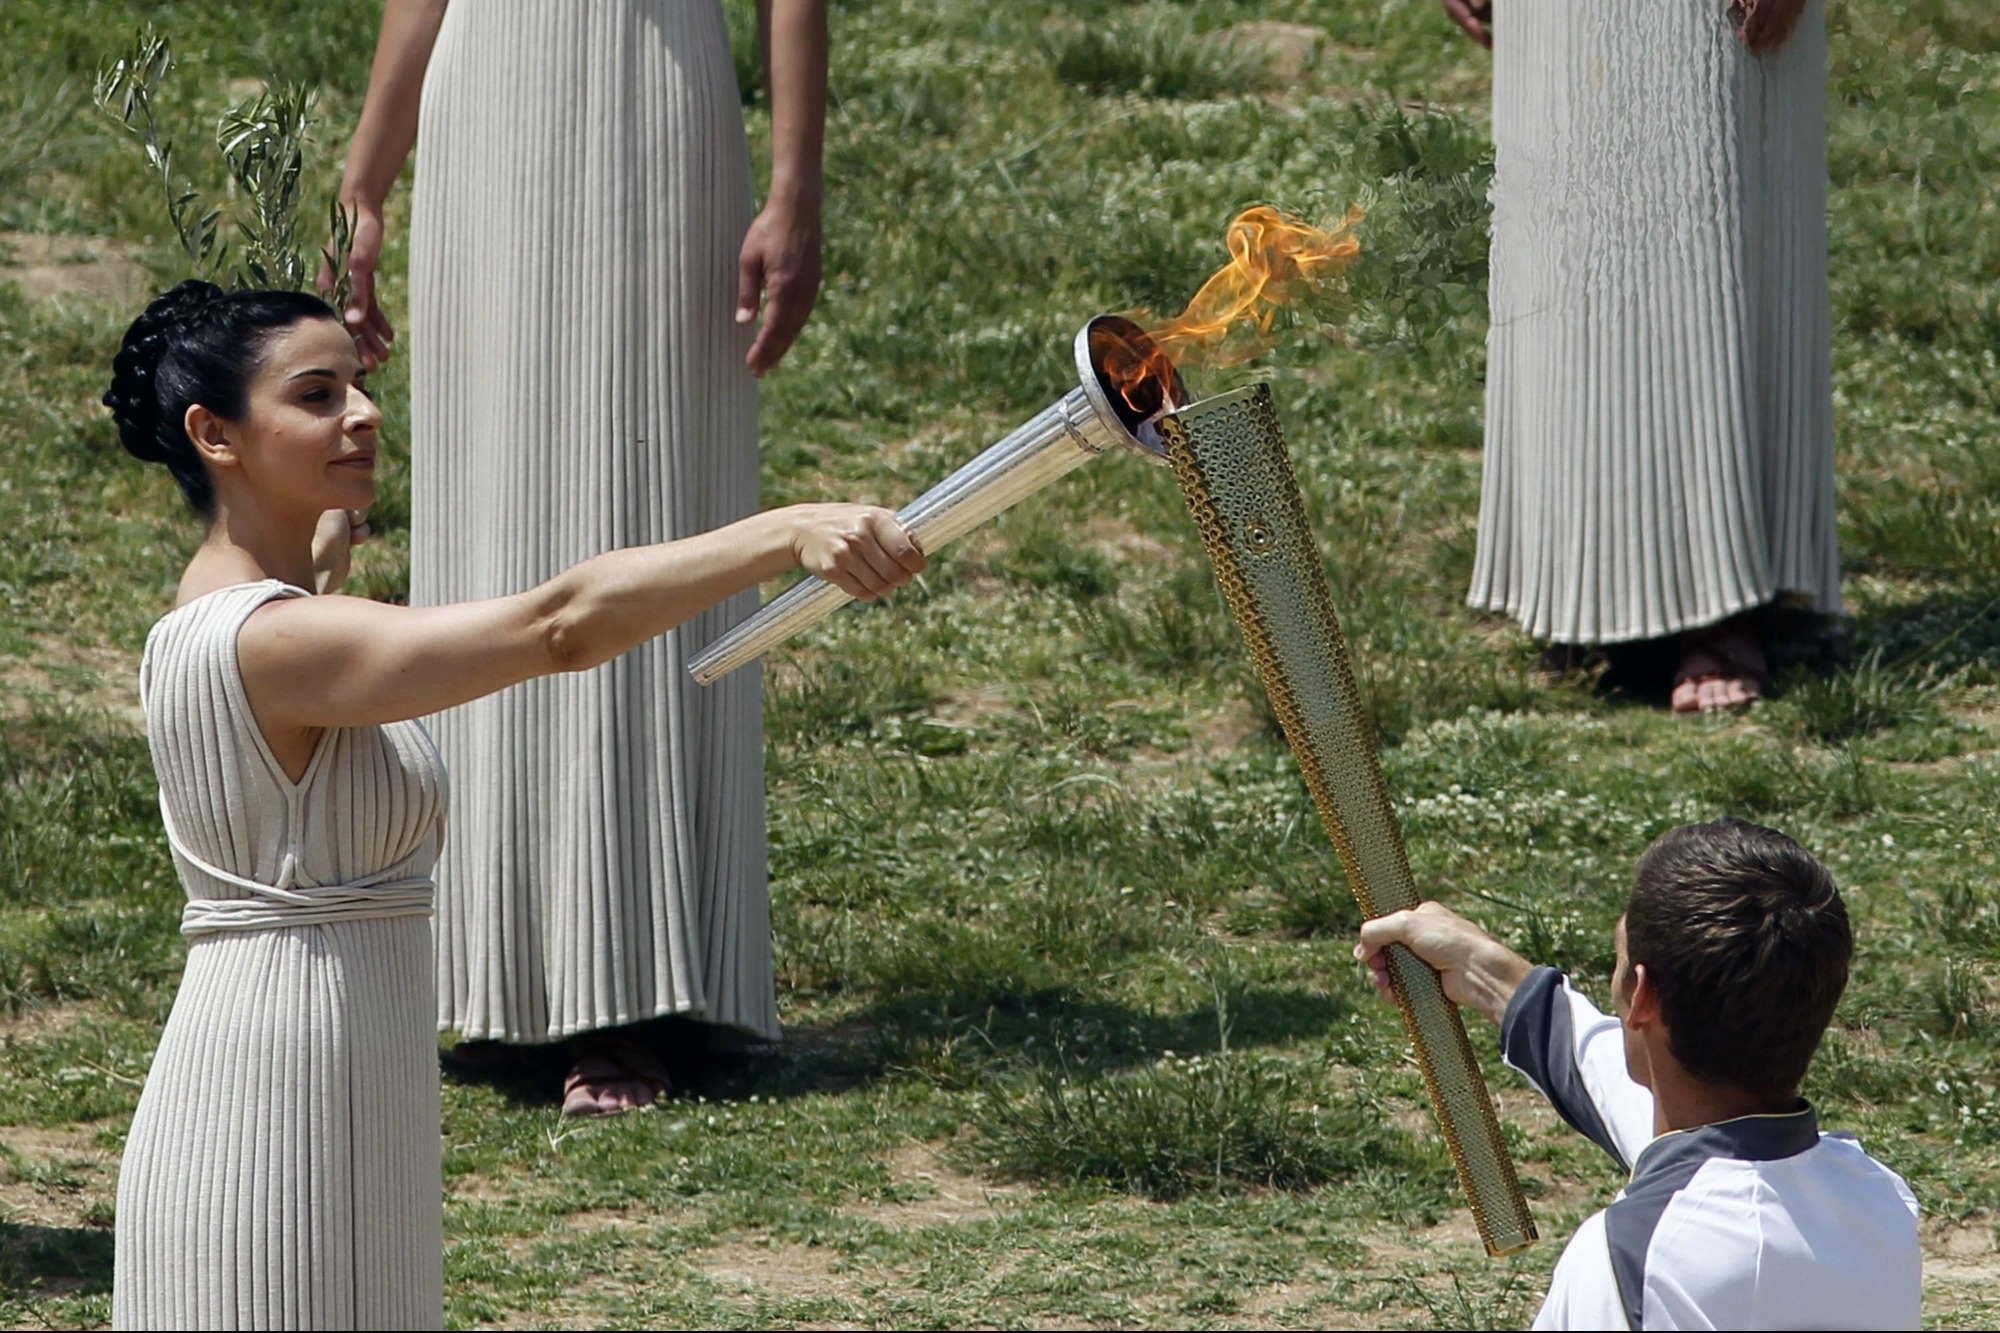 The Olympic Flame lit in Greece for the London Summer Games 2012.